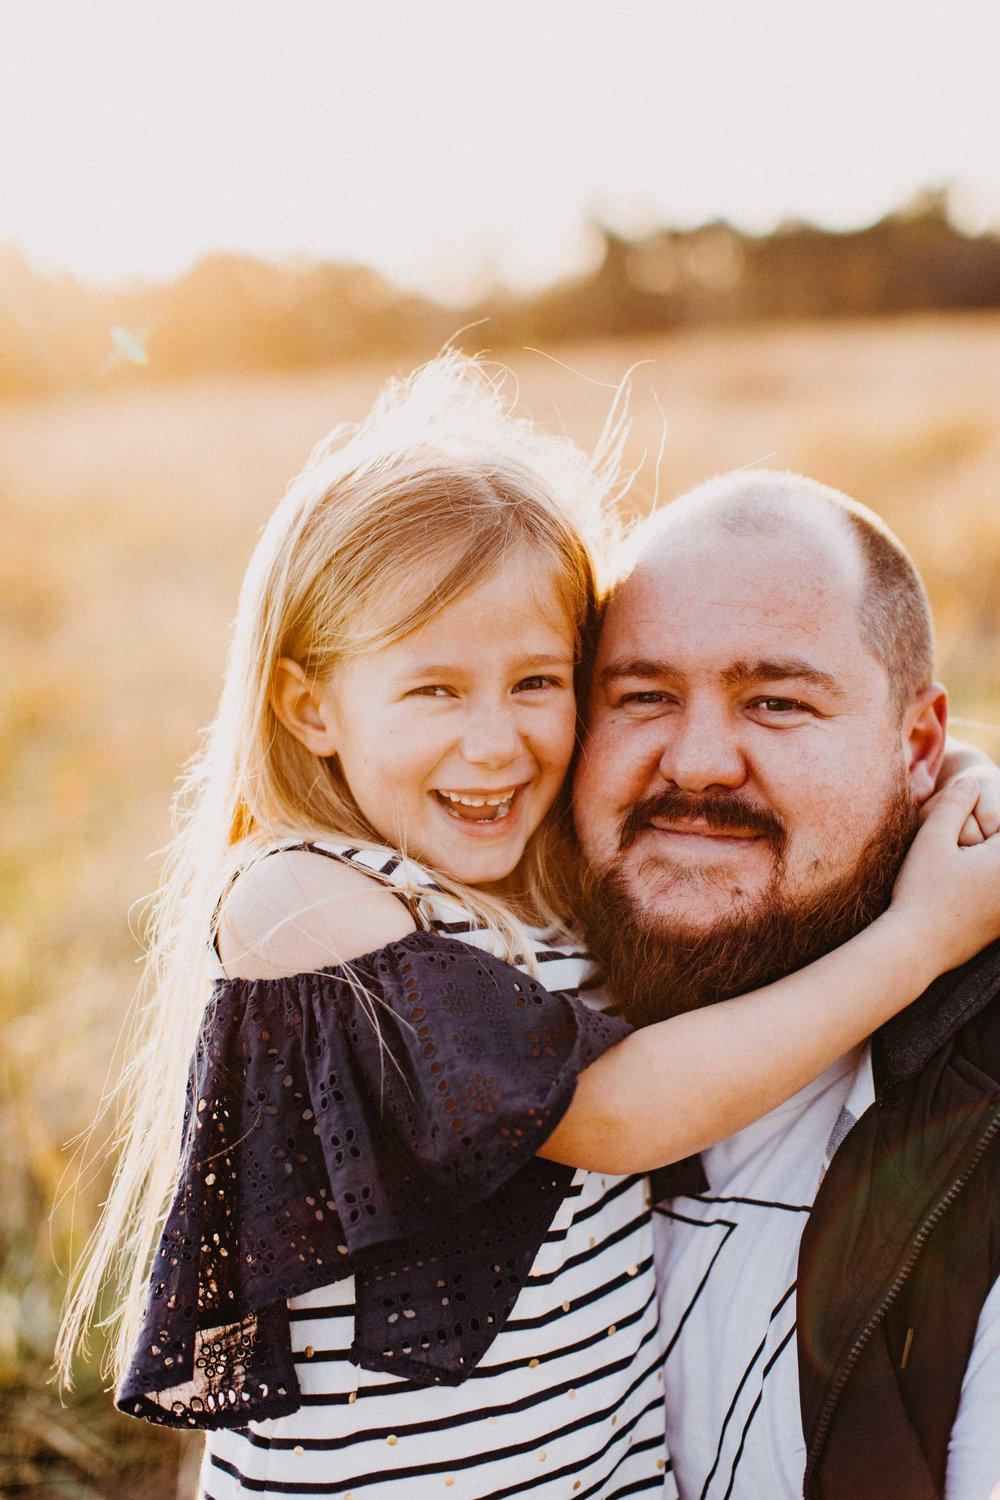 camden-family-session-photography-macarthur-36.jpg